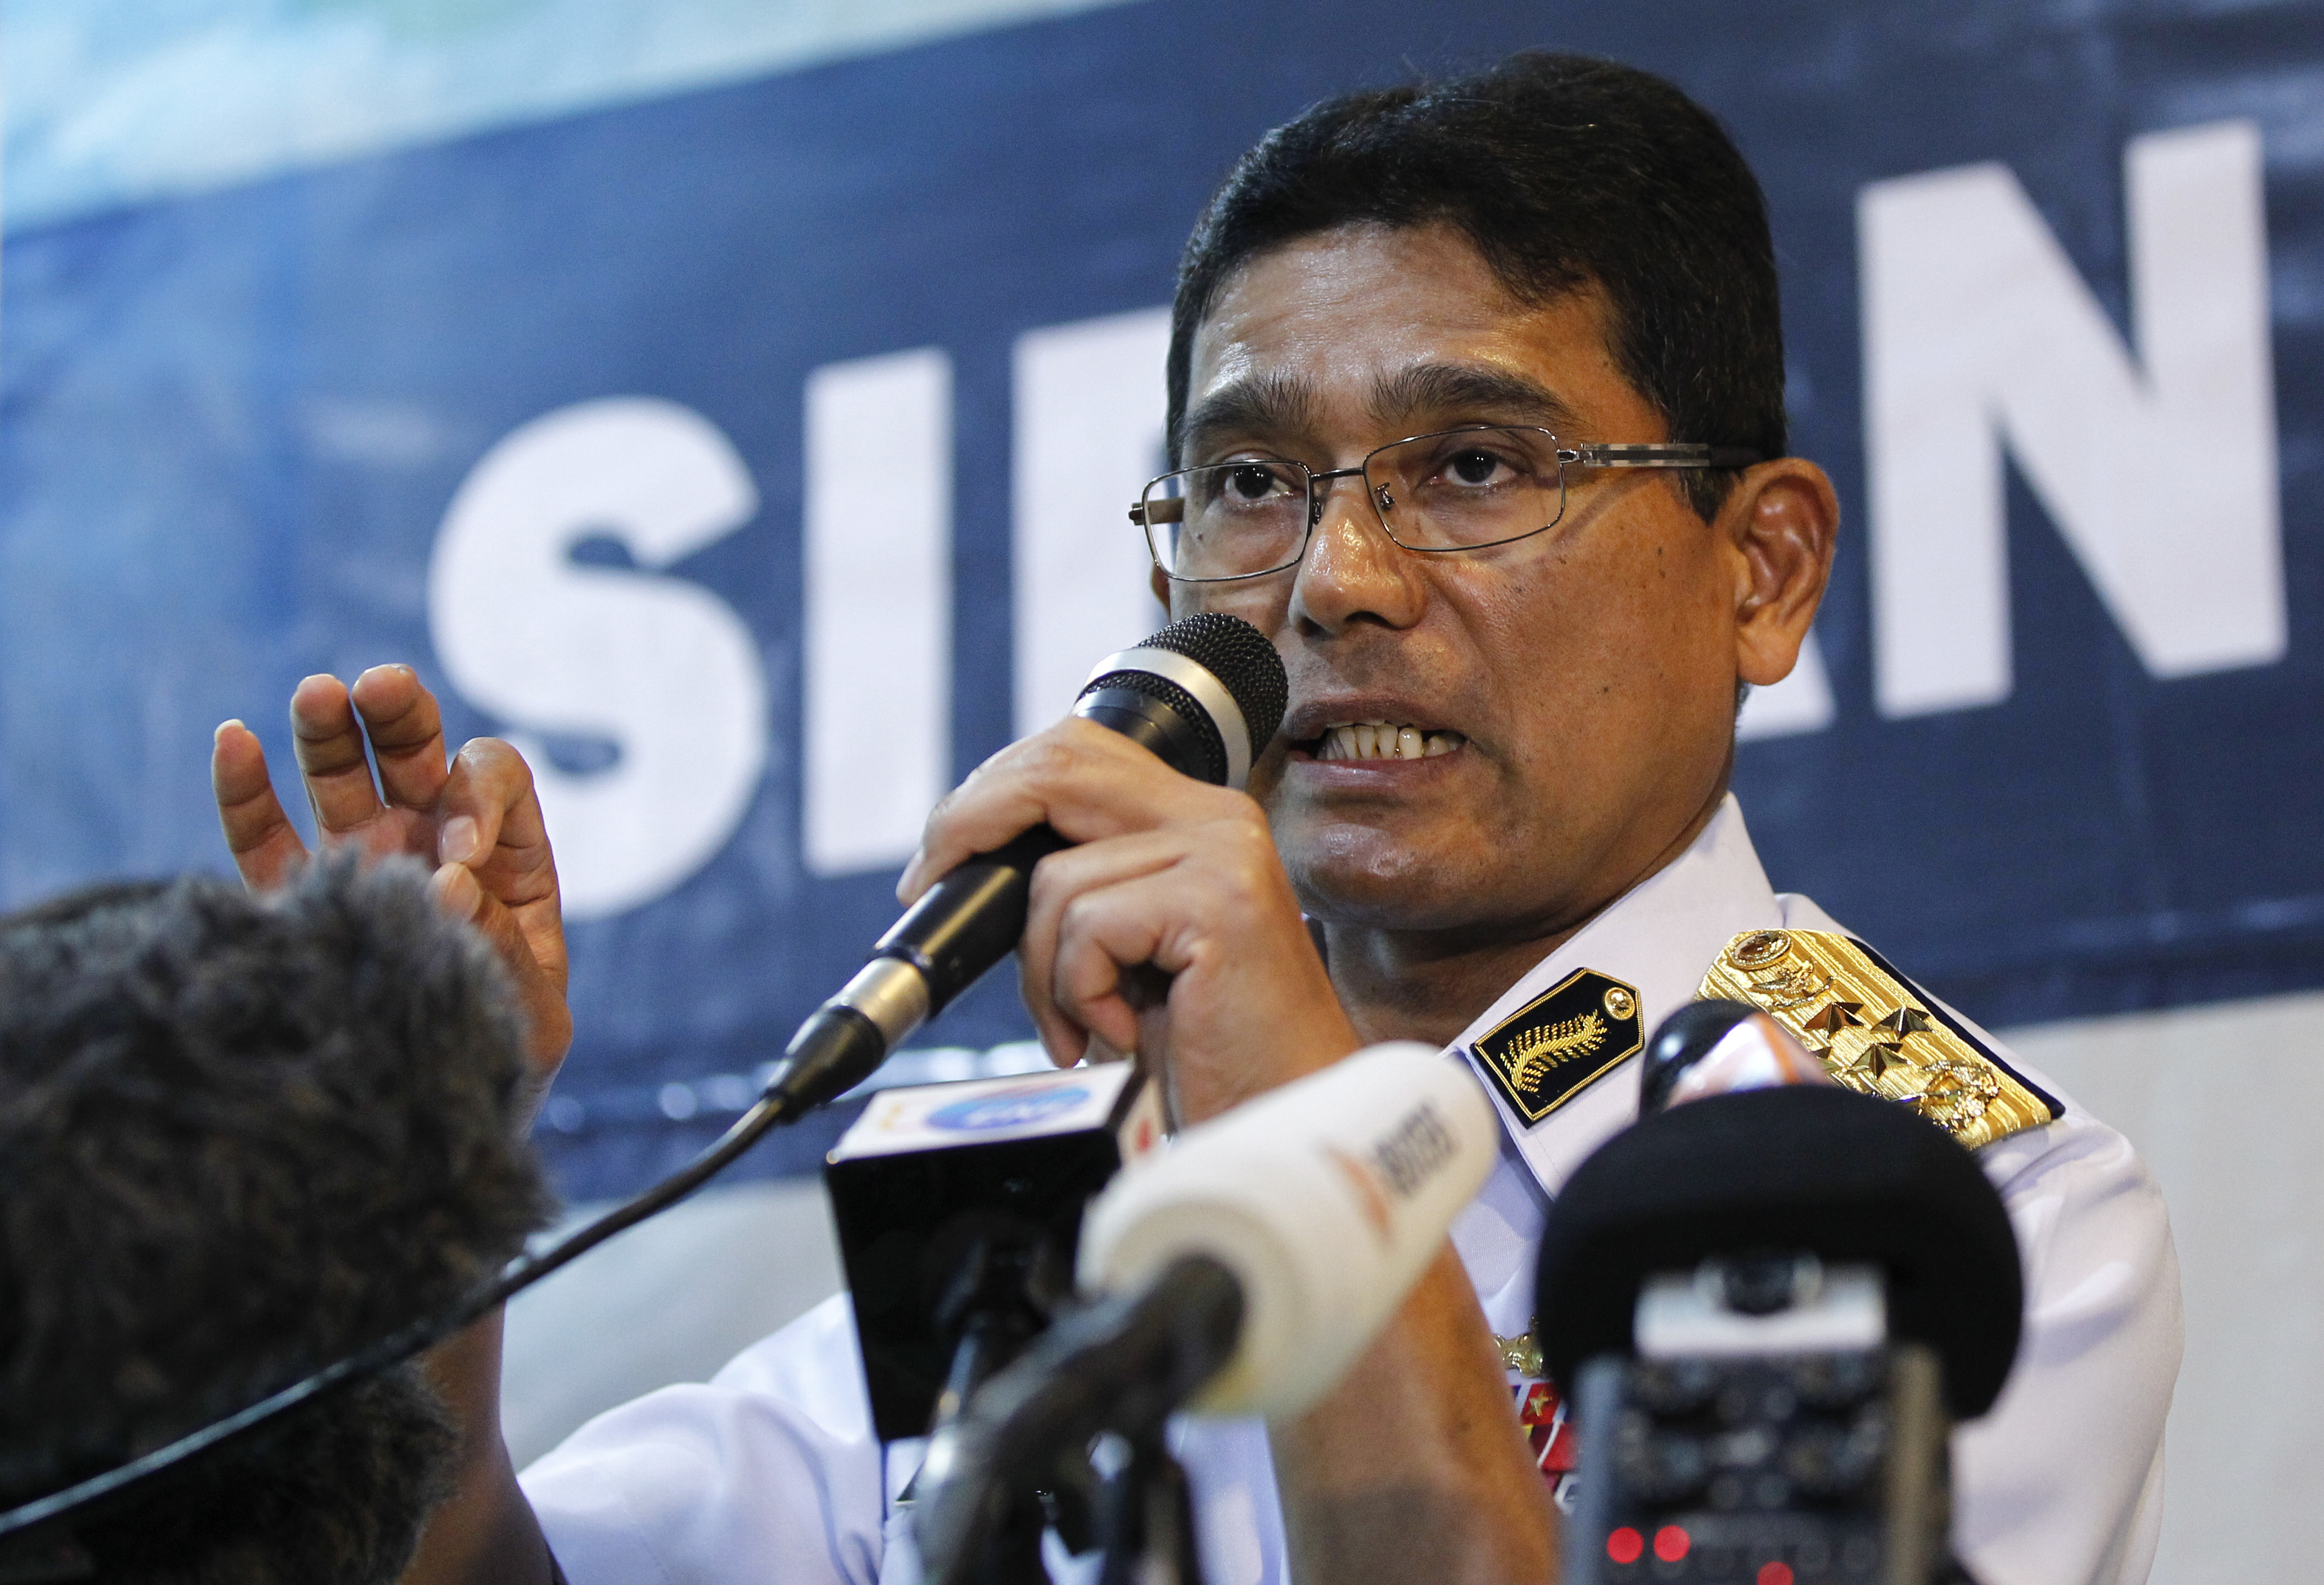 """Malaysia Singapore US Navy Ship Collision-9 Malaysian Maritime Director Indera Abu Bakar speaks during a press conference about a collision of the USS John S. McCain in Putrajaya, Malaysia, Monday, Aug. 21, 2017. The U.S. Navy said the USS John S. McCain arrived at Singapore's naval base with """"significant damage"""" to its hull after a collision early Monday between it and an oil tanker east of Singapore. A number of U.S. sailors are missing after the collision, the second accident involving a ship from the Navy's 7th Fleet in the Pacific in two months. (AP Photo/Daniel Chan)"""